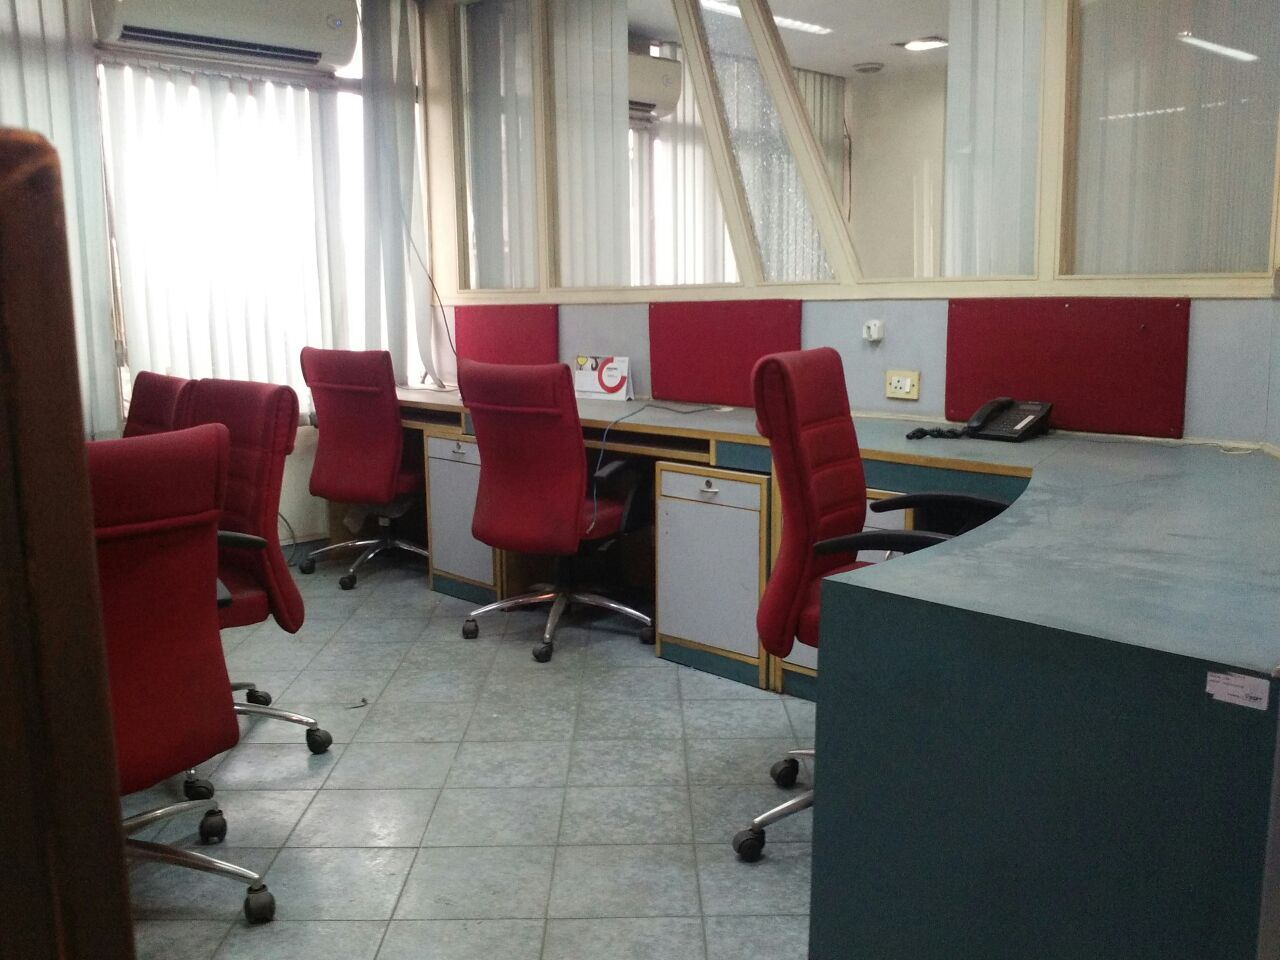 Furnished office space property on in nehru place on rent 1 cabin 25 work station